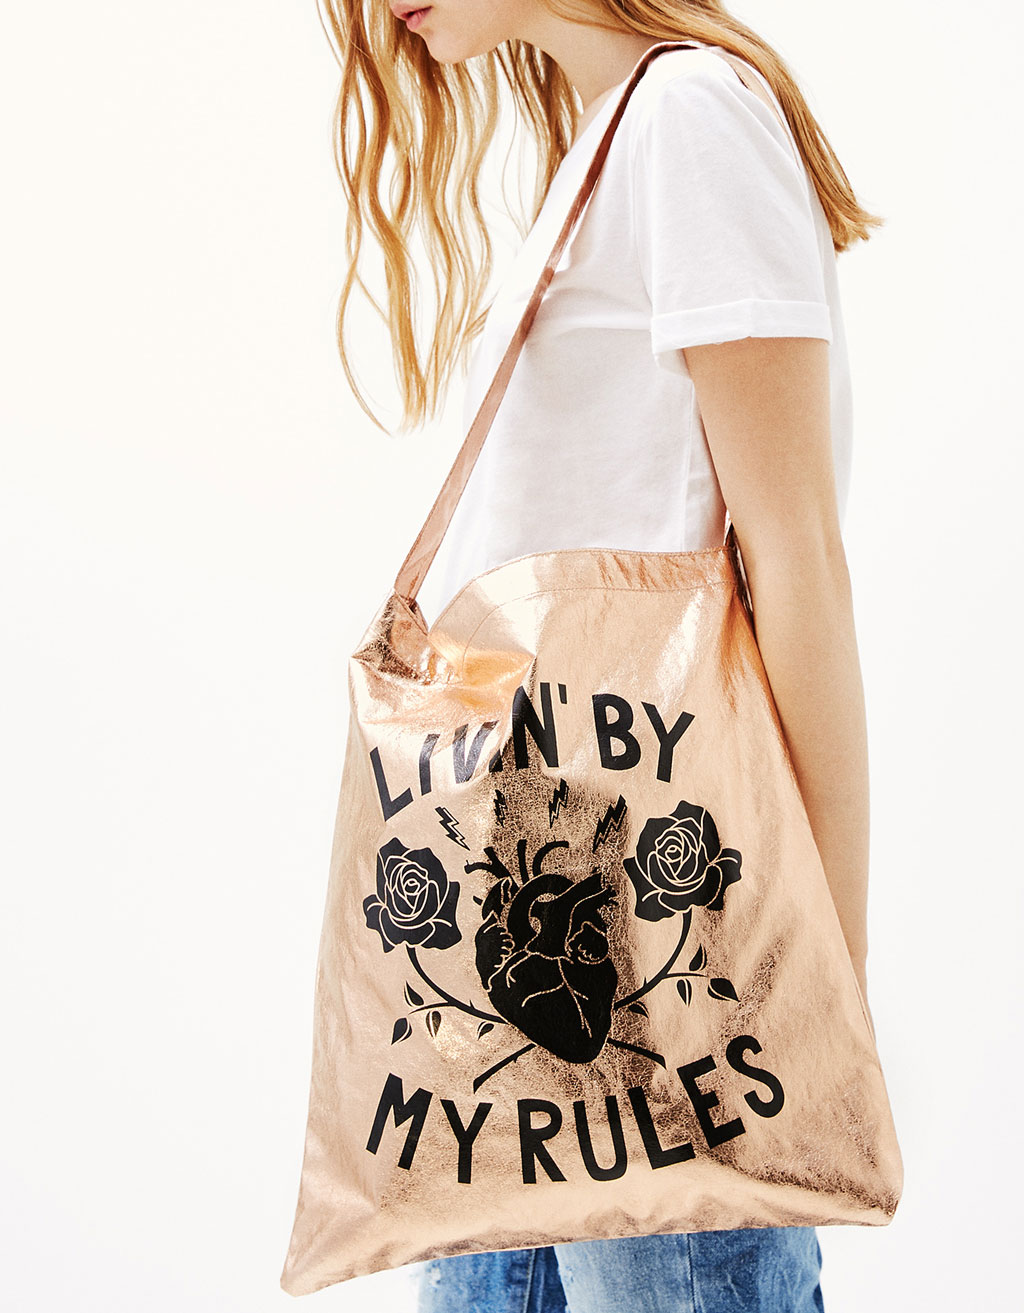 Living by my rules tote bag